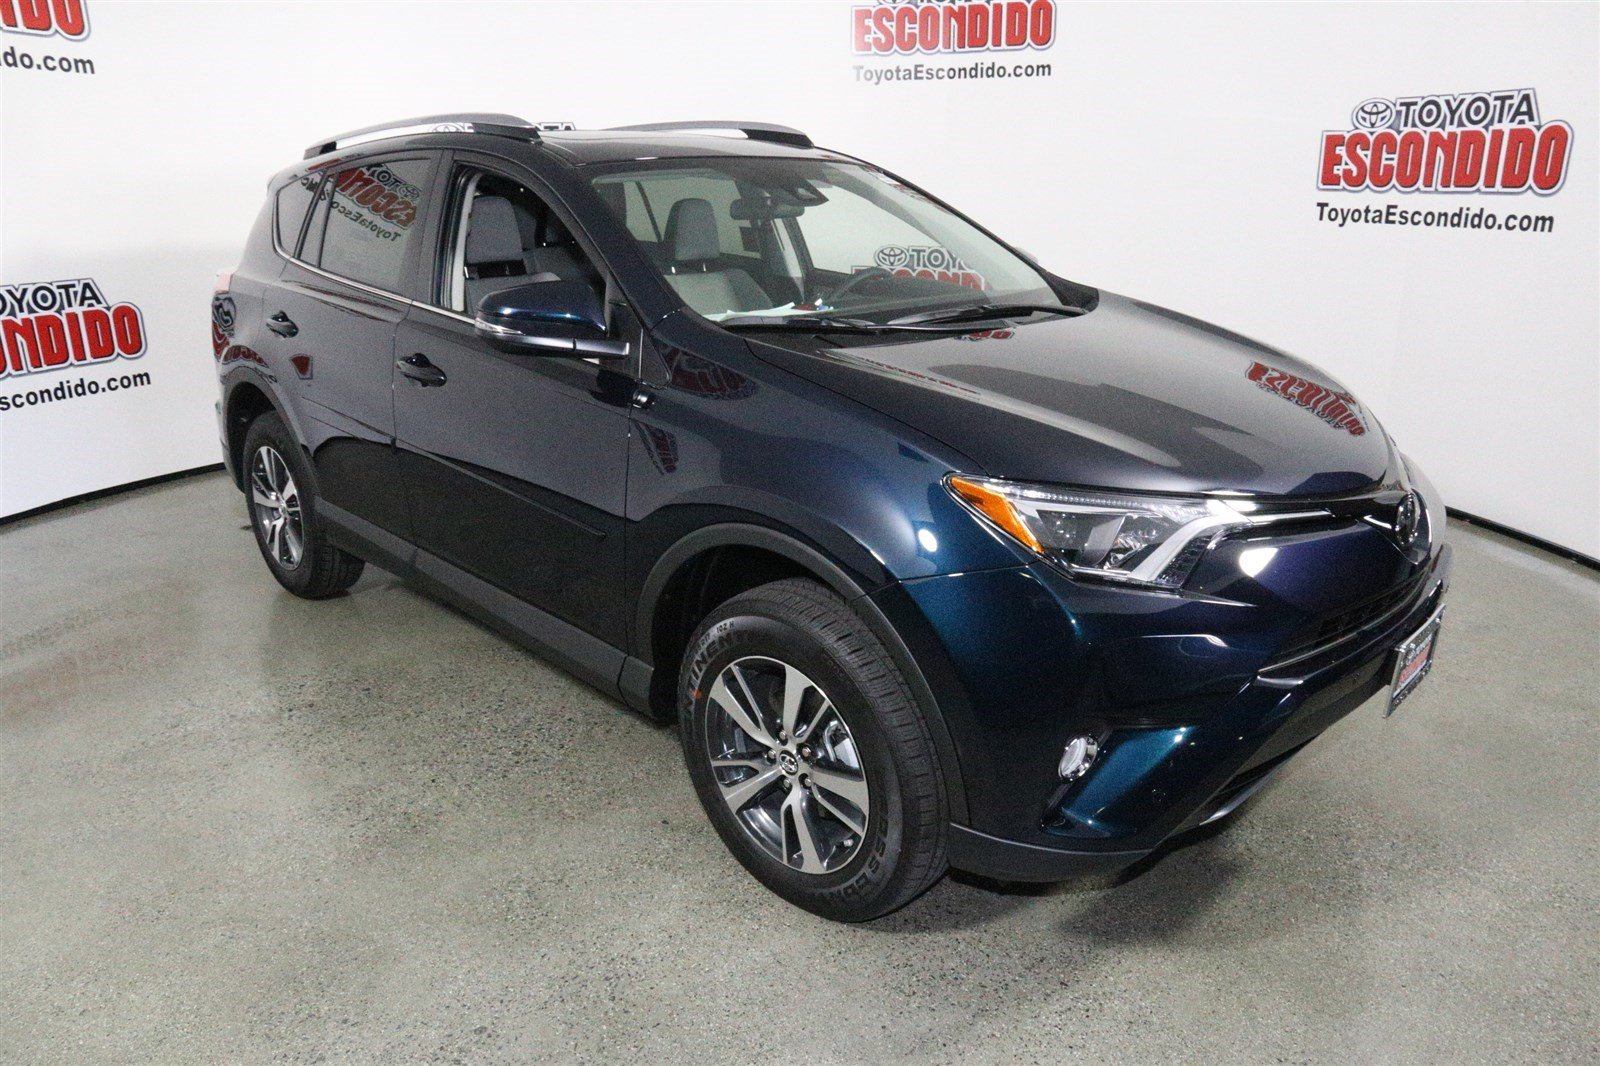 new 2017 toyota rav4 xle sport utility in escondido 1014402 toyota of escondido. Black Bedroom Furniture Sets. Home Design Ideas